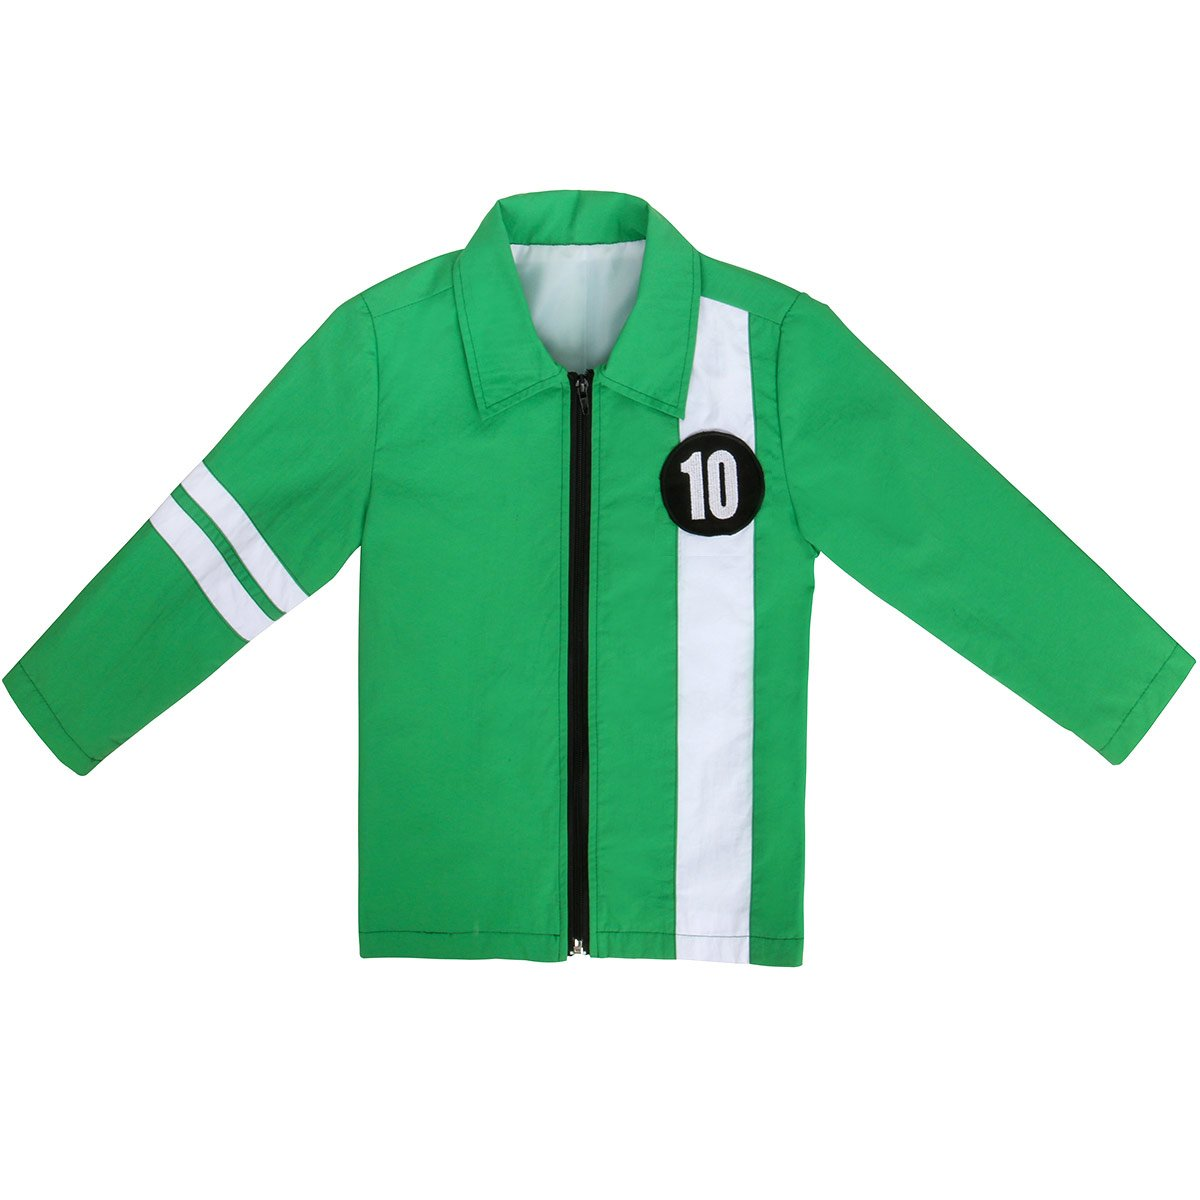 WeixinyuanST Ben Green Jacket Aliens Force Kids Boys Benjamin Irby Tennyson Halloween Cosplay Costume Fancy Dress Shirt (Medium) by WeixinyuanST